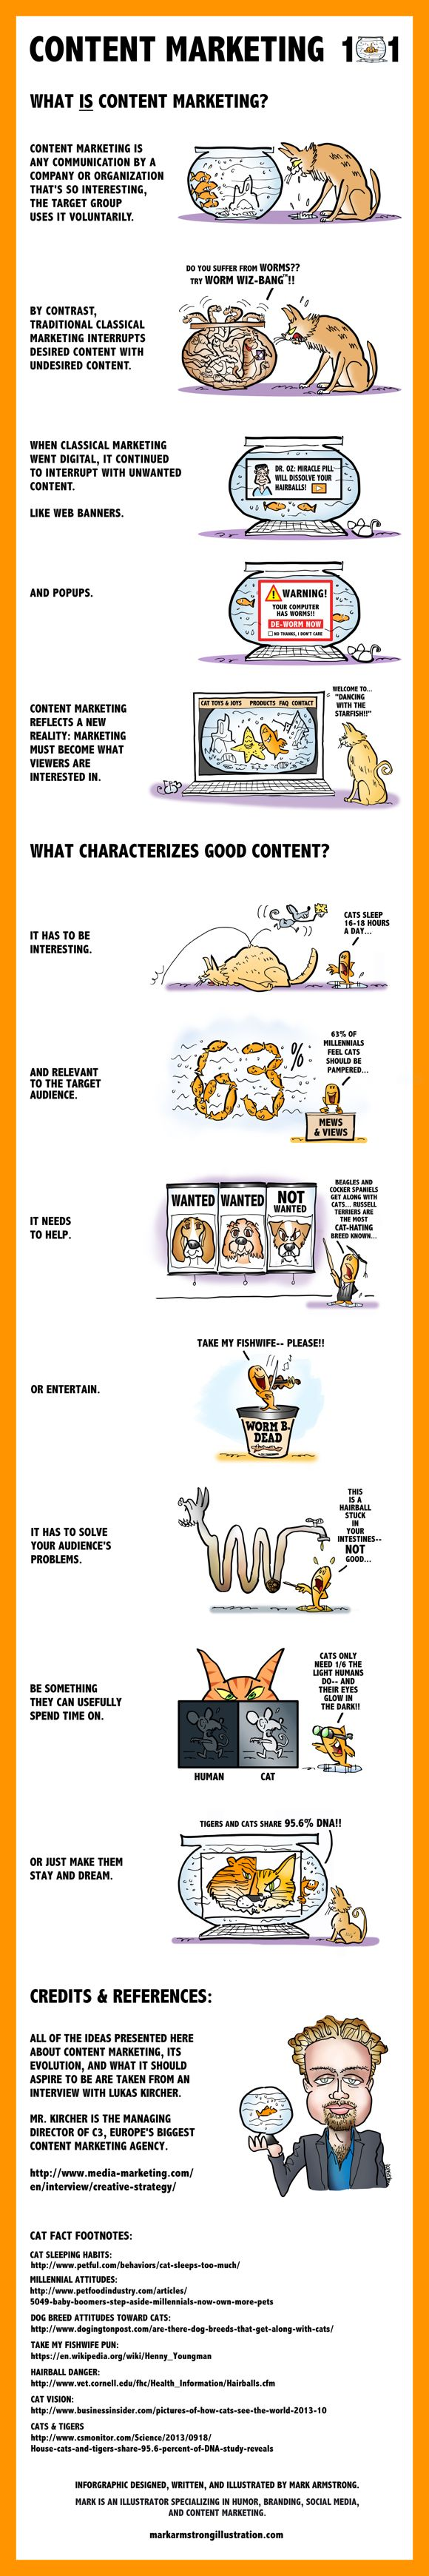 Infographic: Content Marketing 101 Featuring Kittens